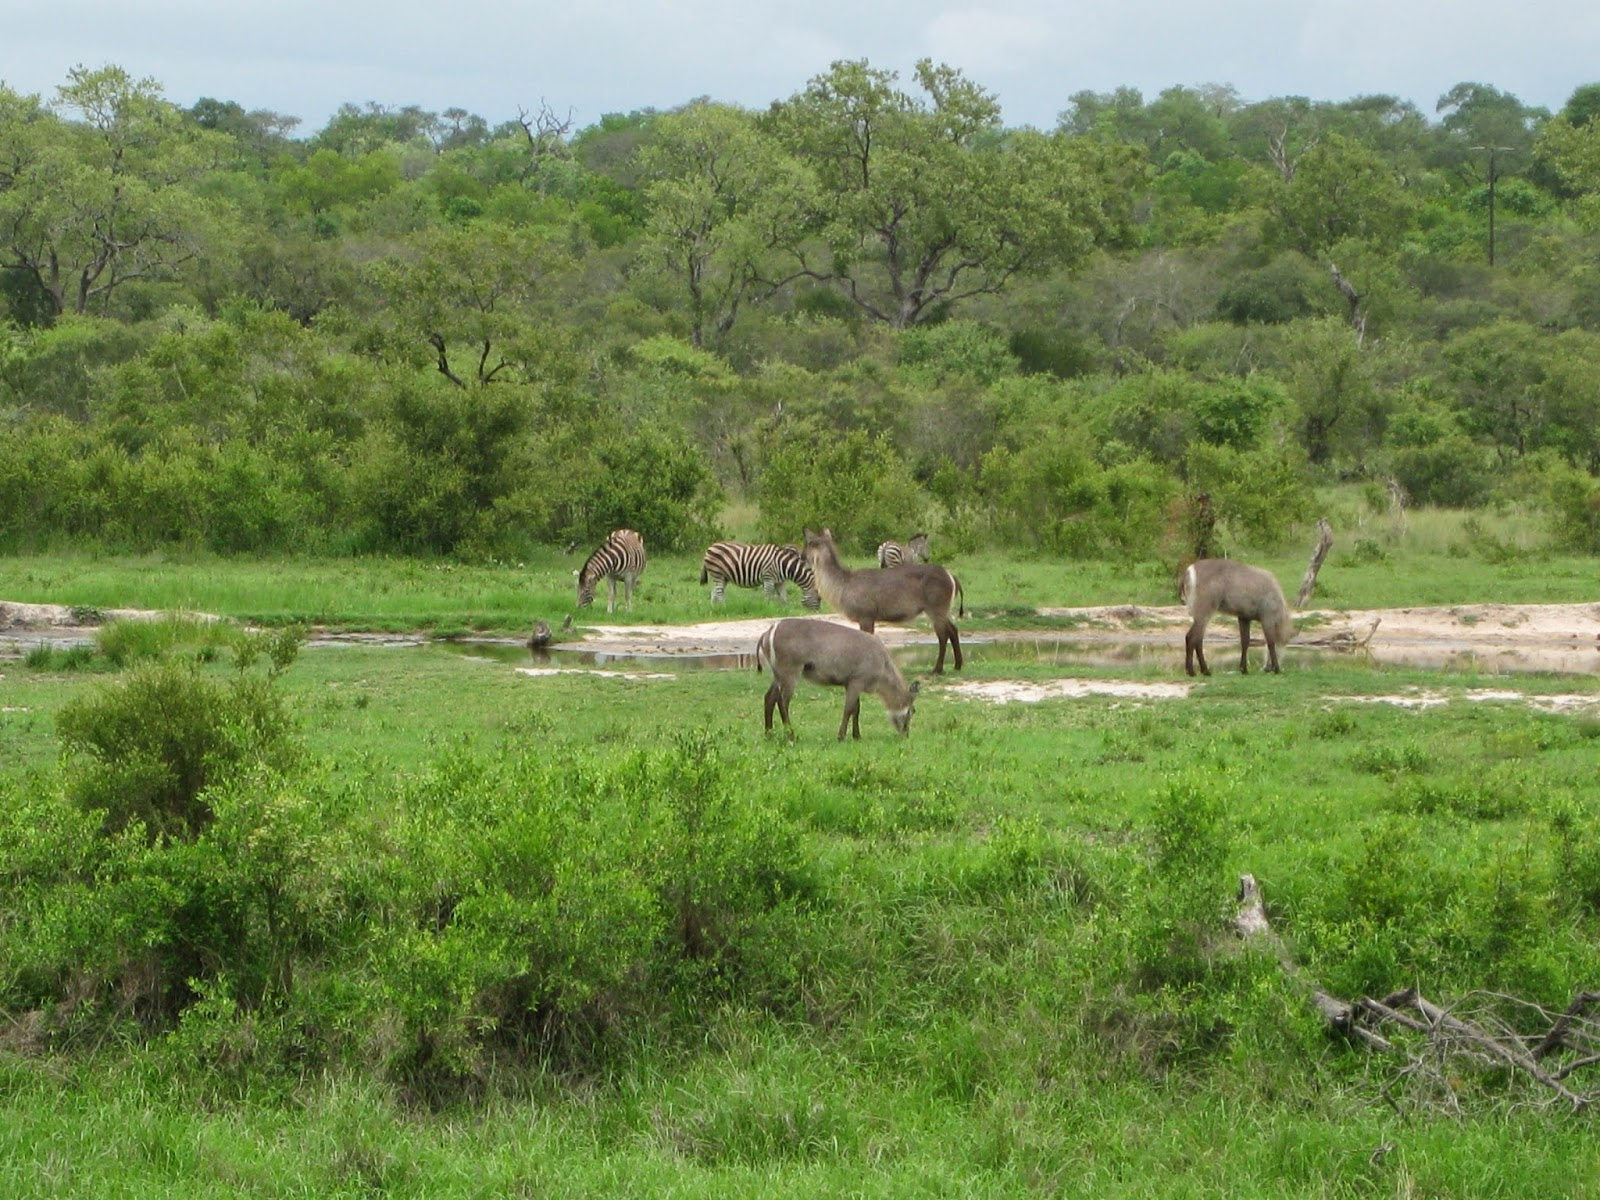 Sabi Sands - Animals gather at the watering hole